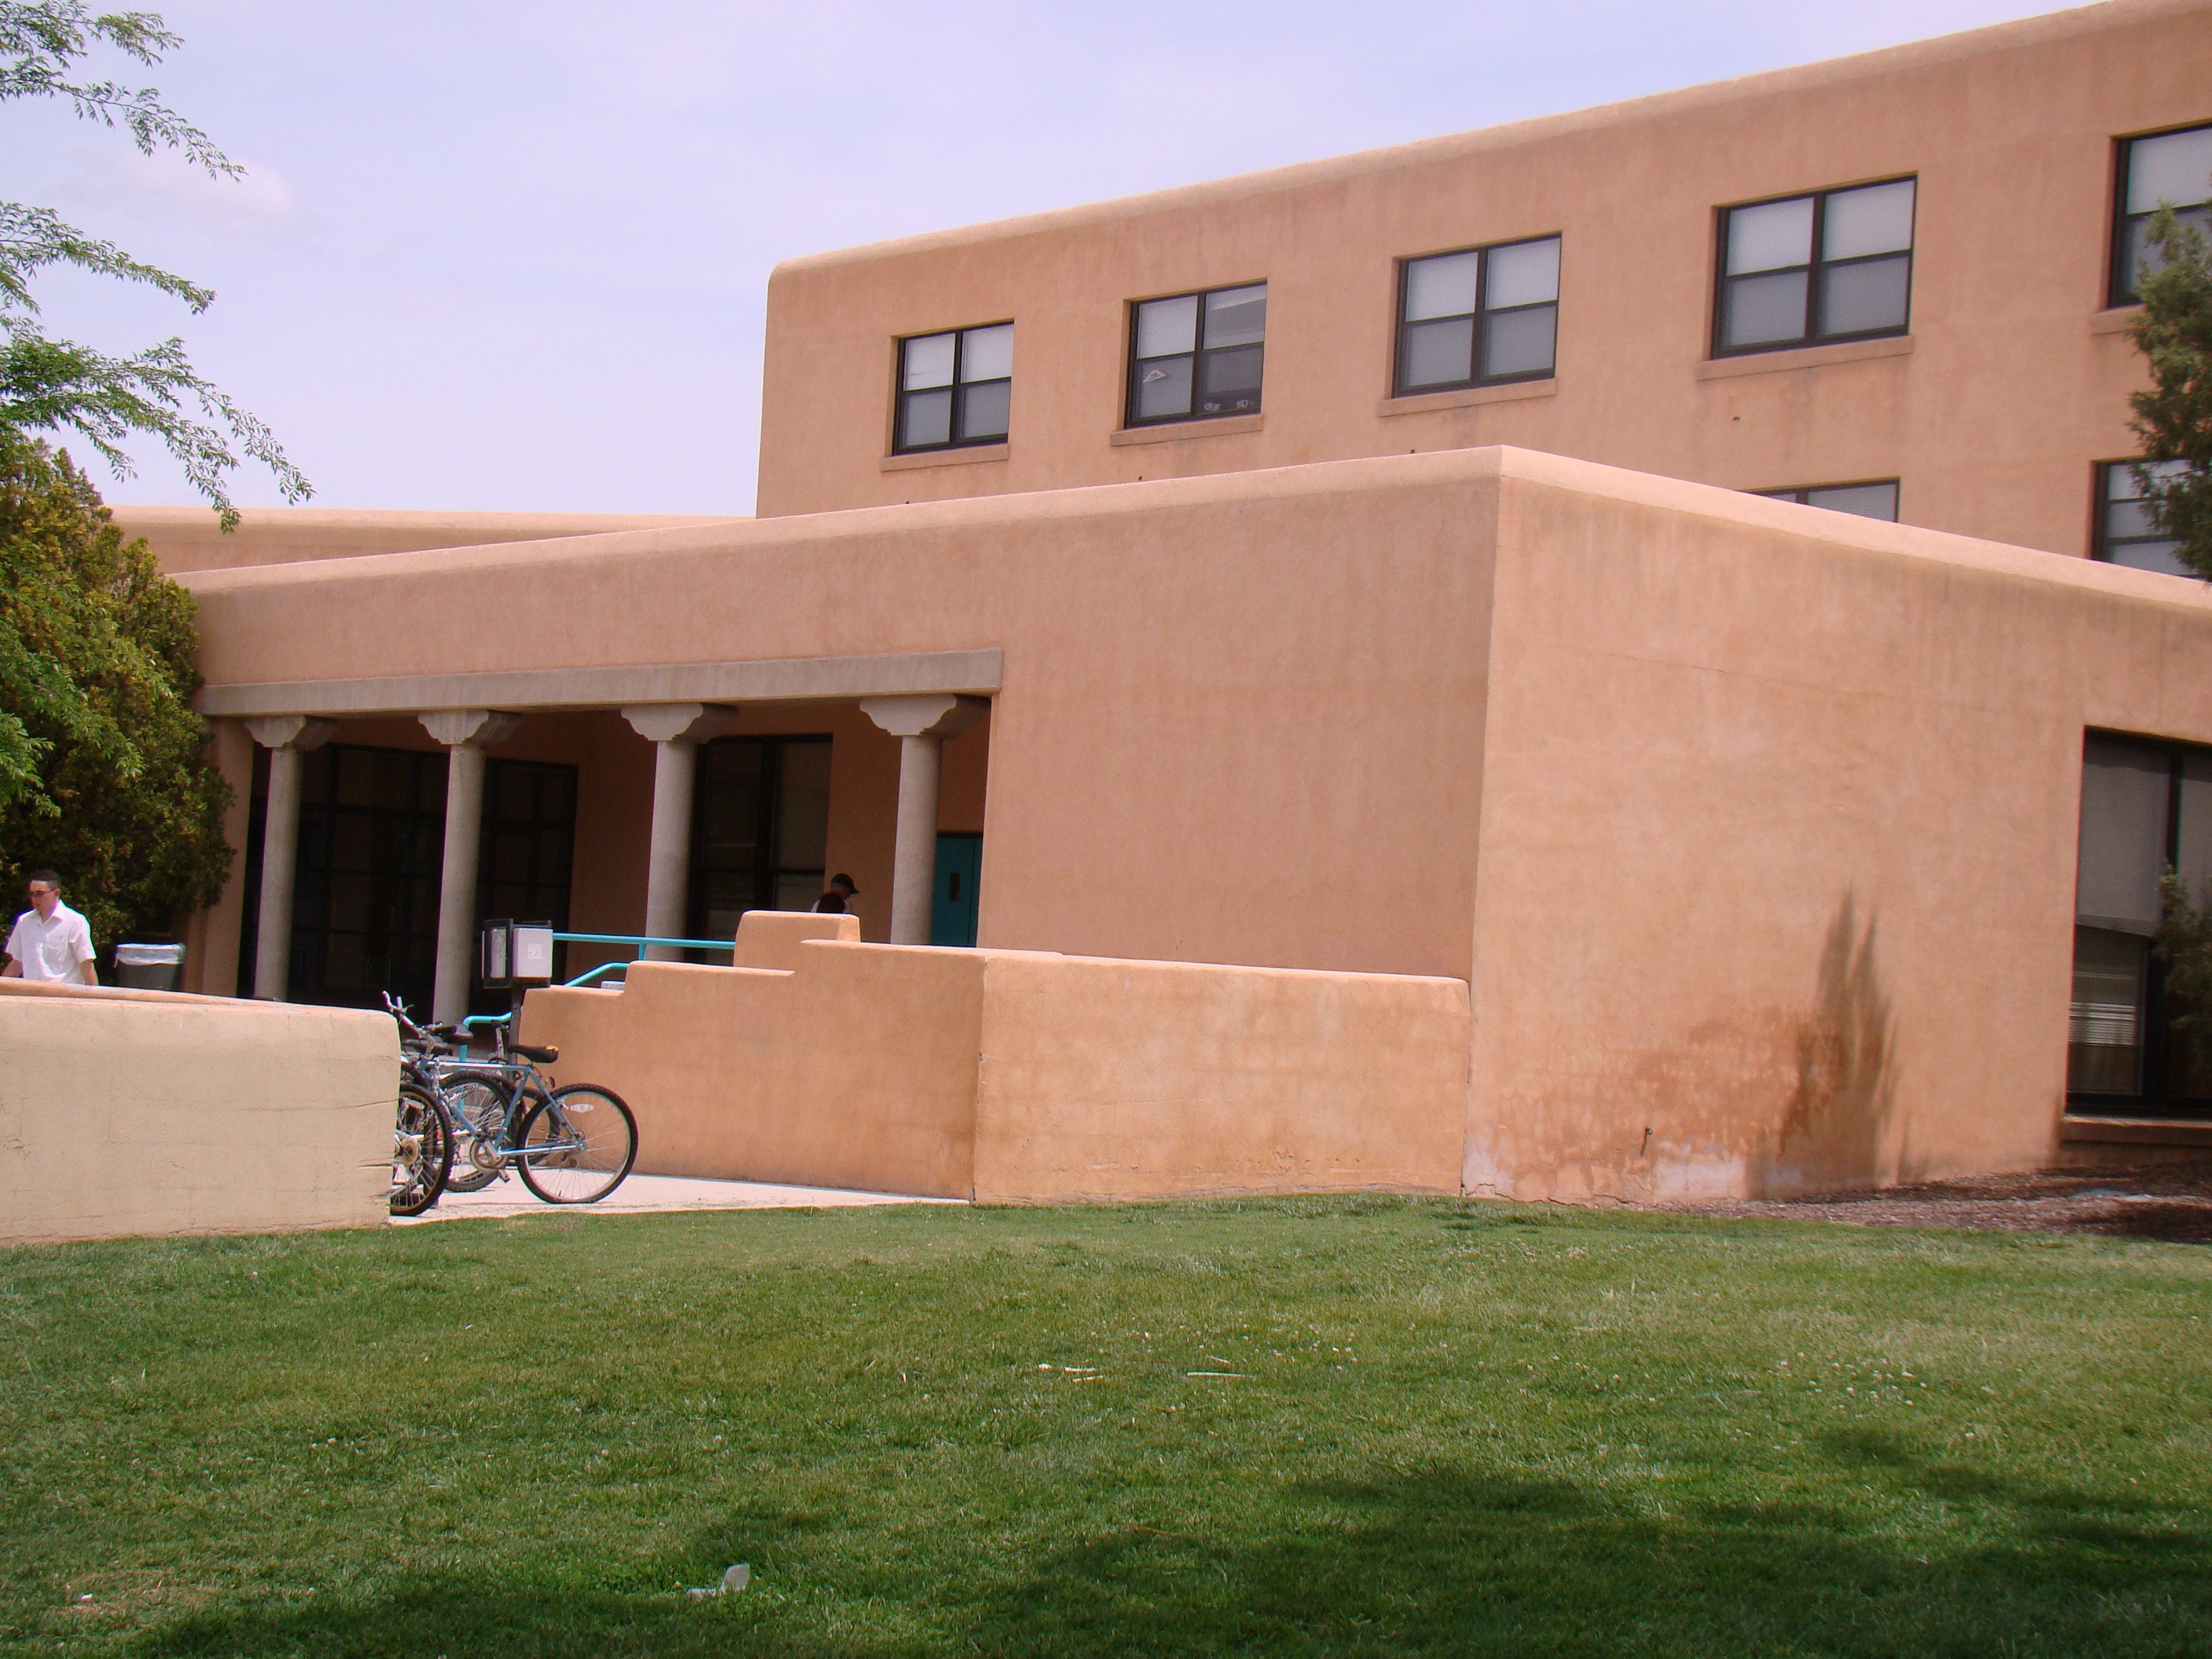 One Of Unm S Largest Residence Halls And Most Popular Housing